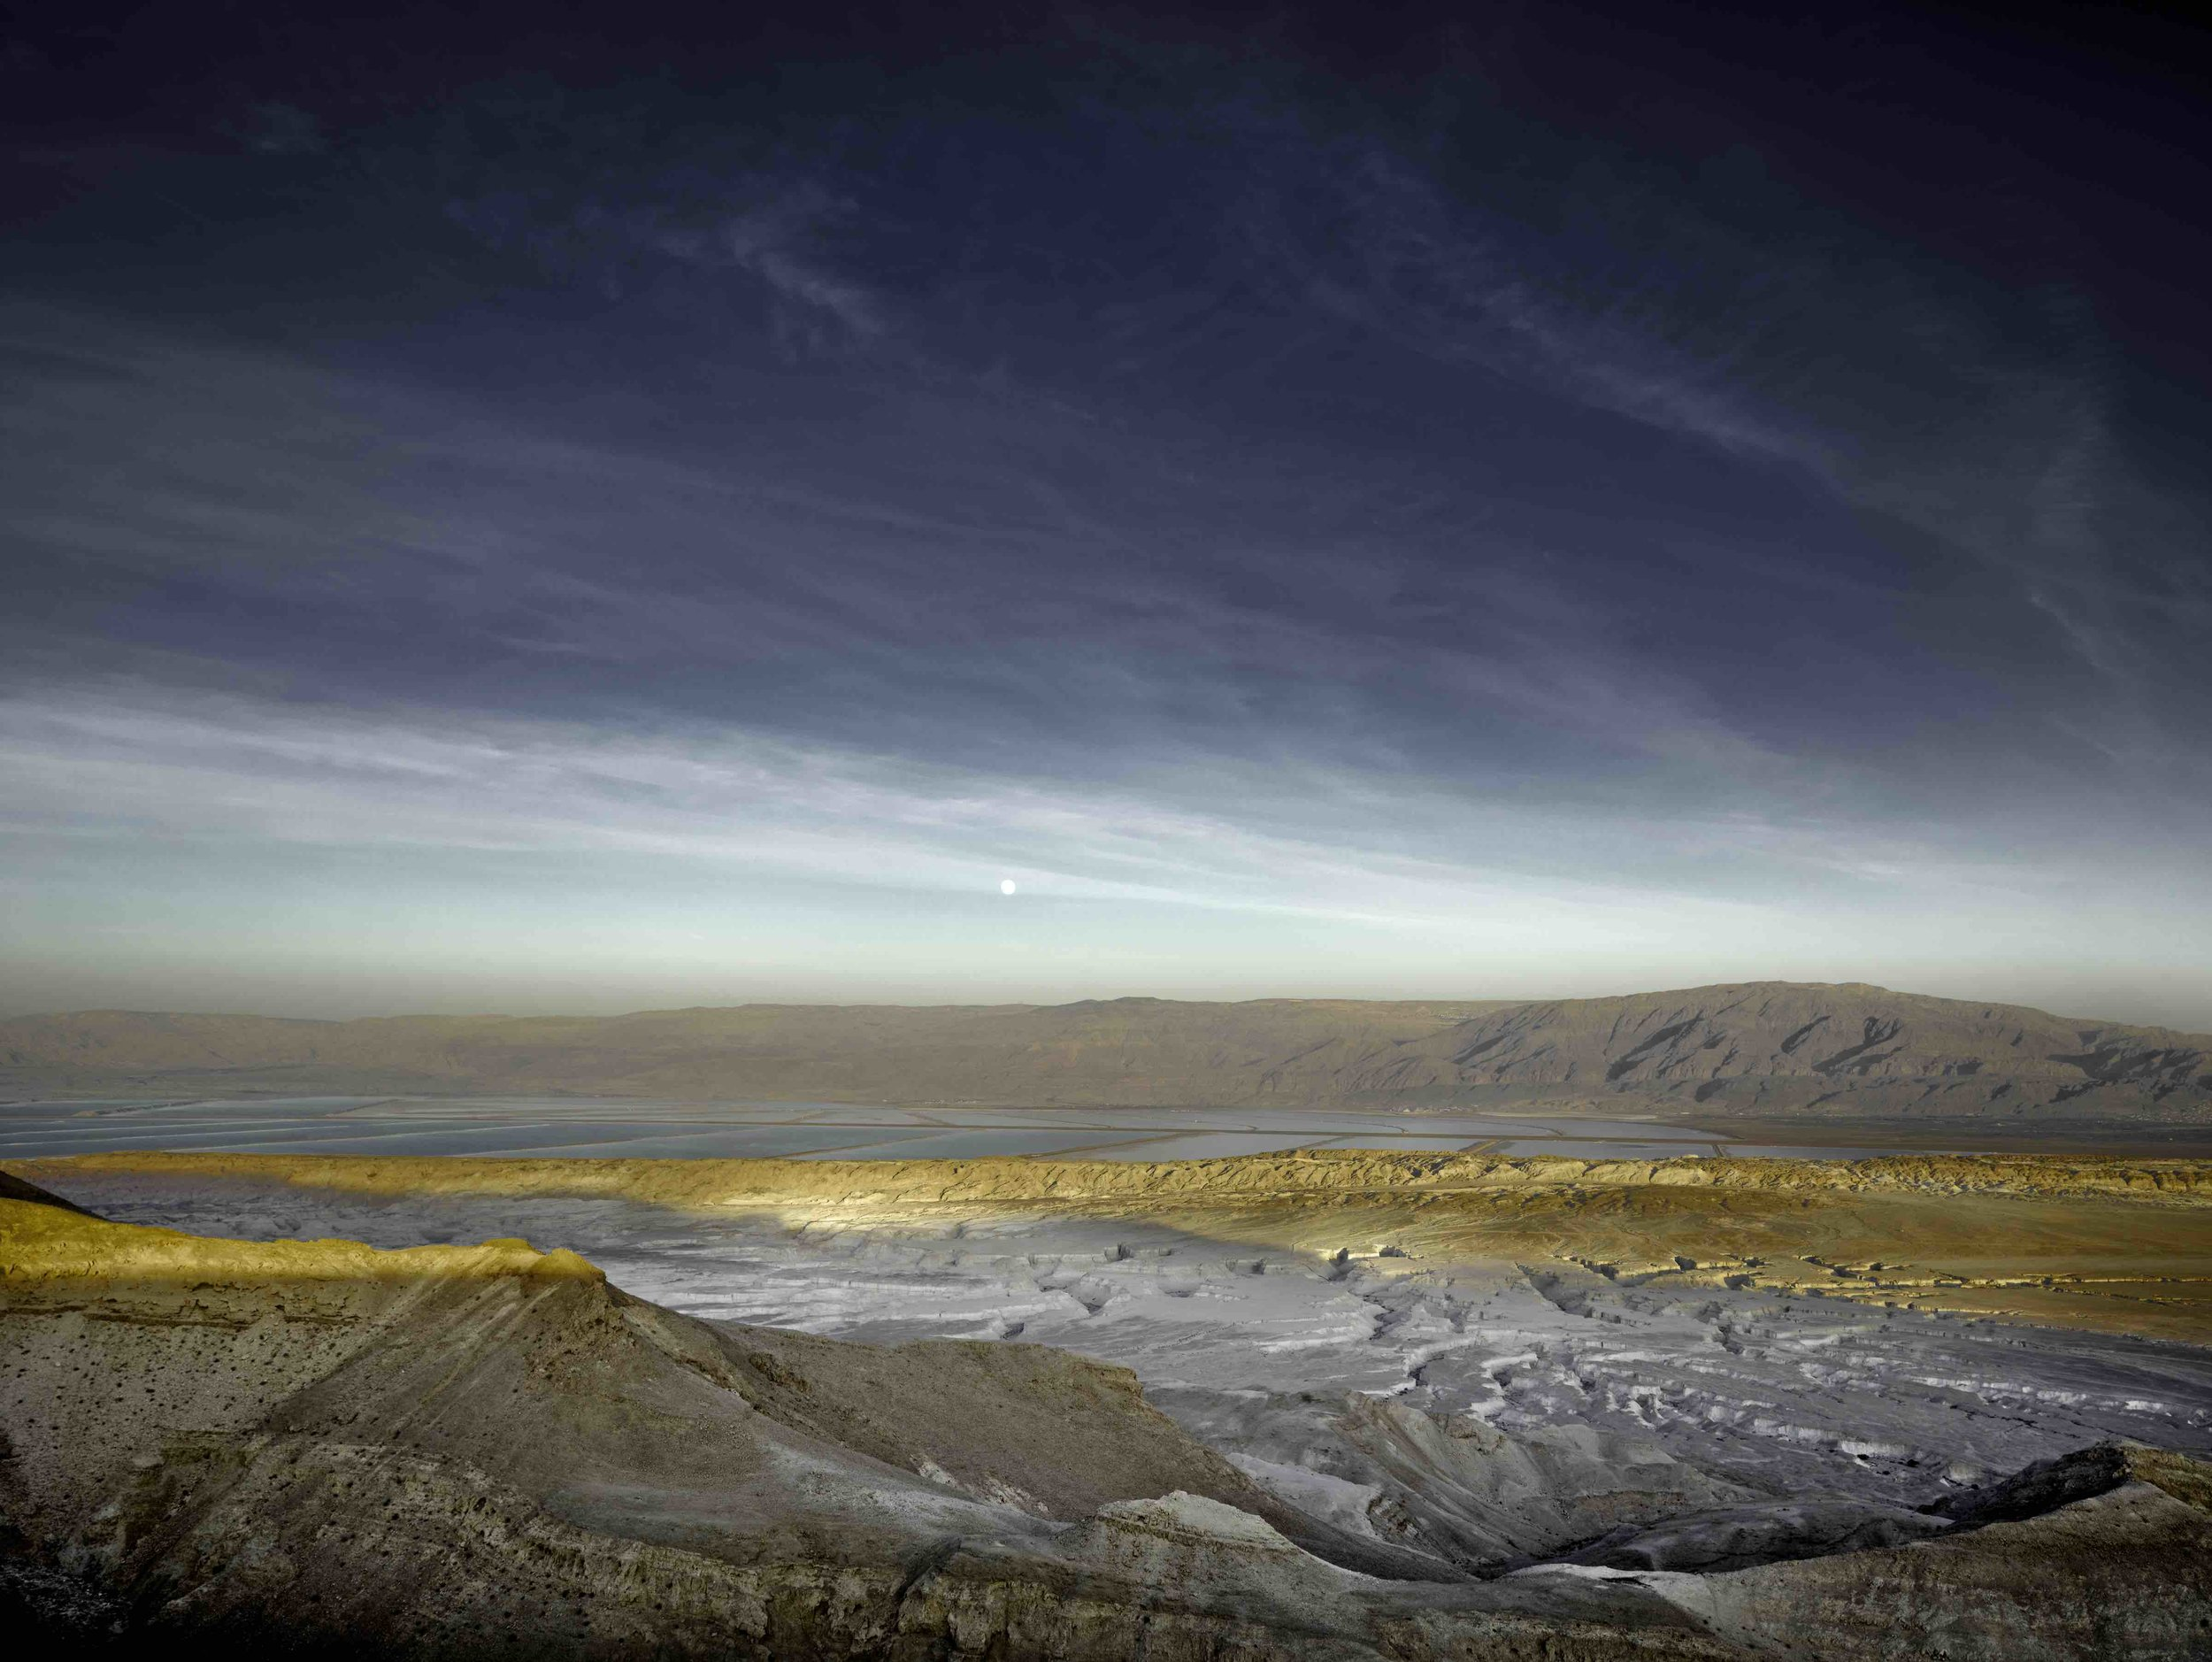 Nahal Pratzim and Dead Sea, Full Moon, 2012